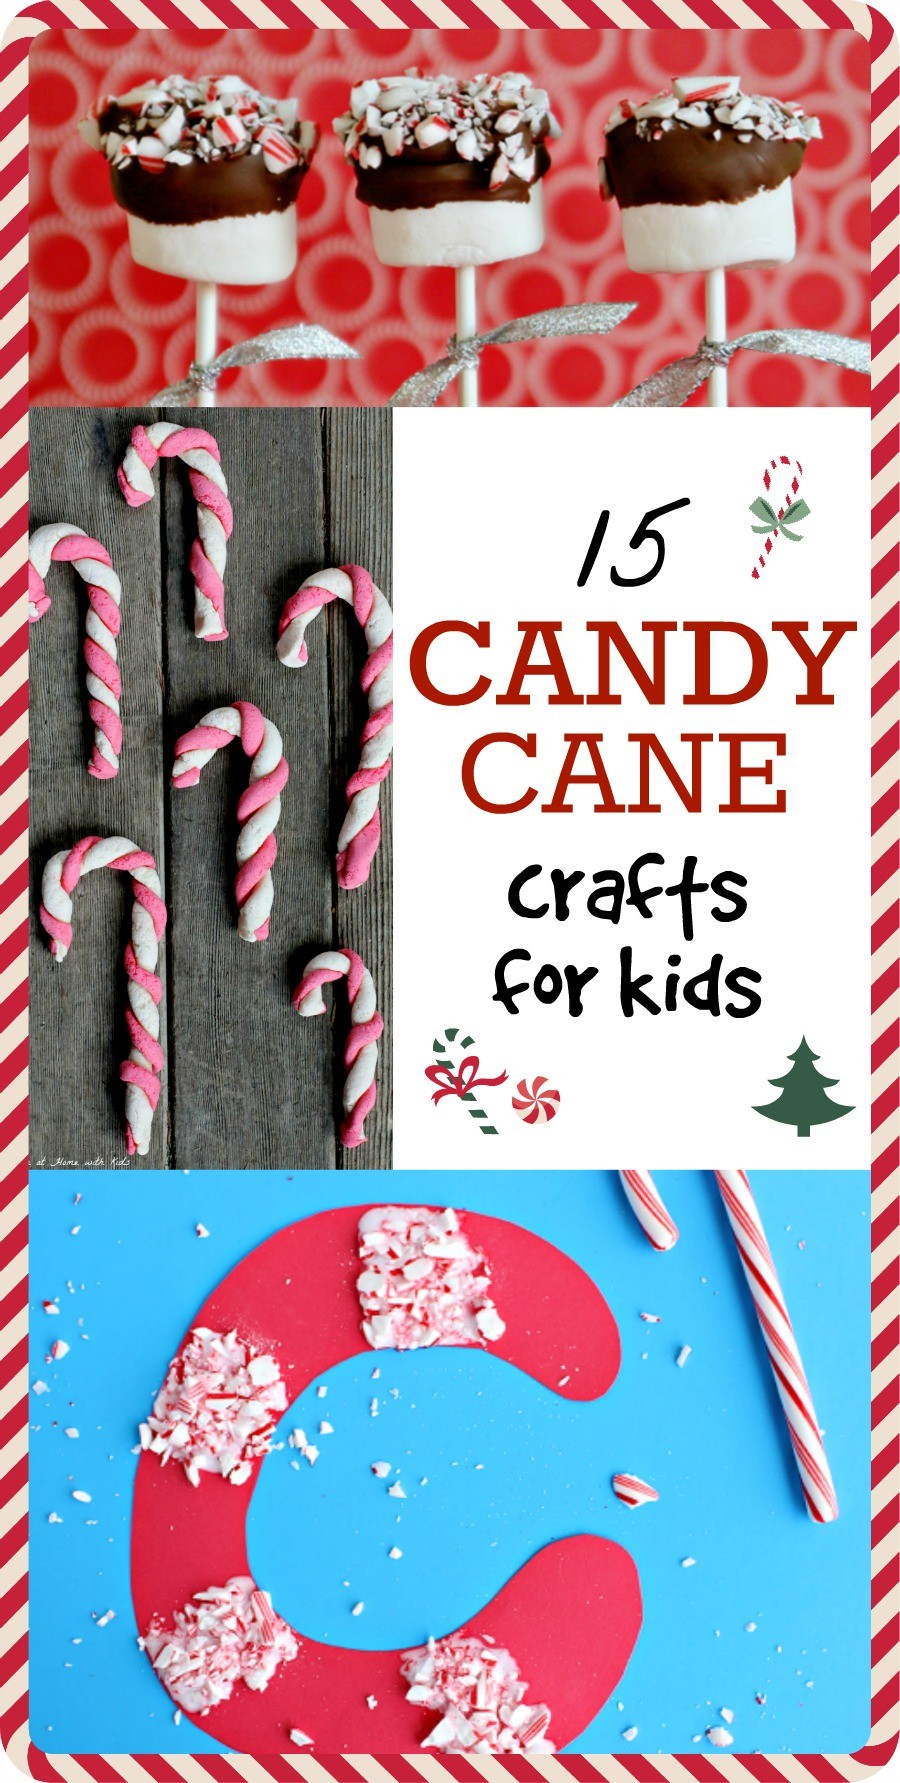 15 Cute Candy Cane Crafts For Kids - These are the cutest ideas!